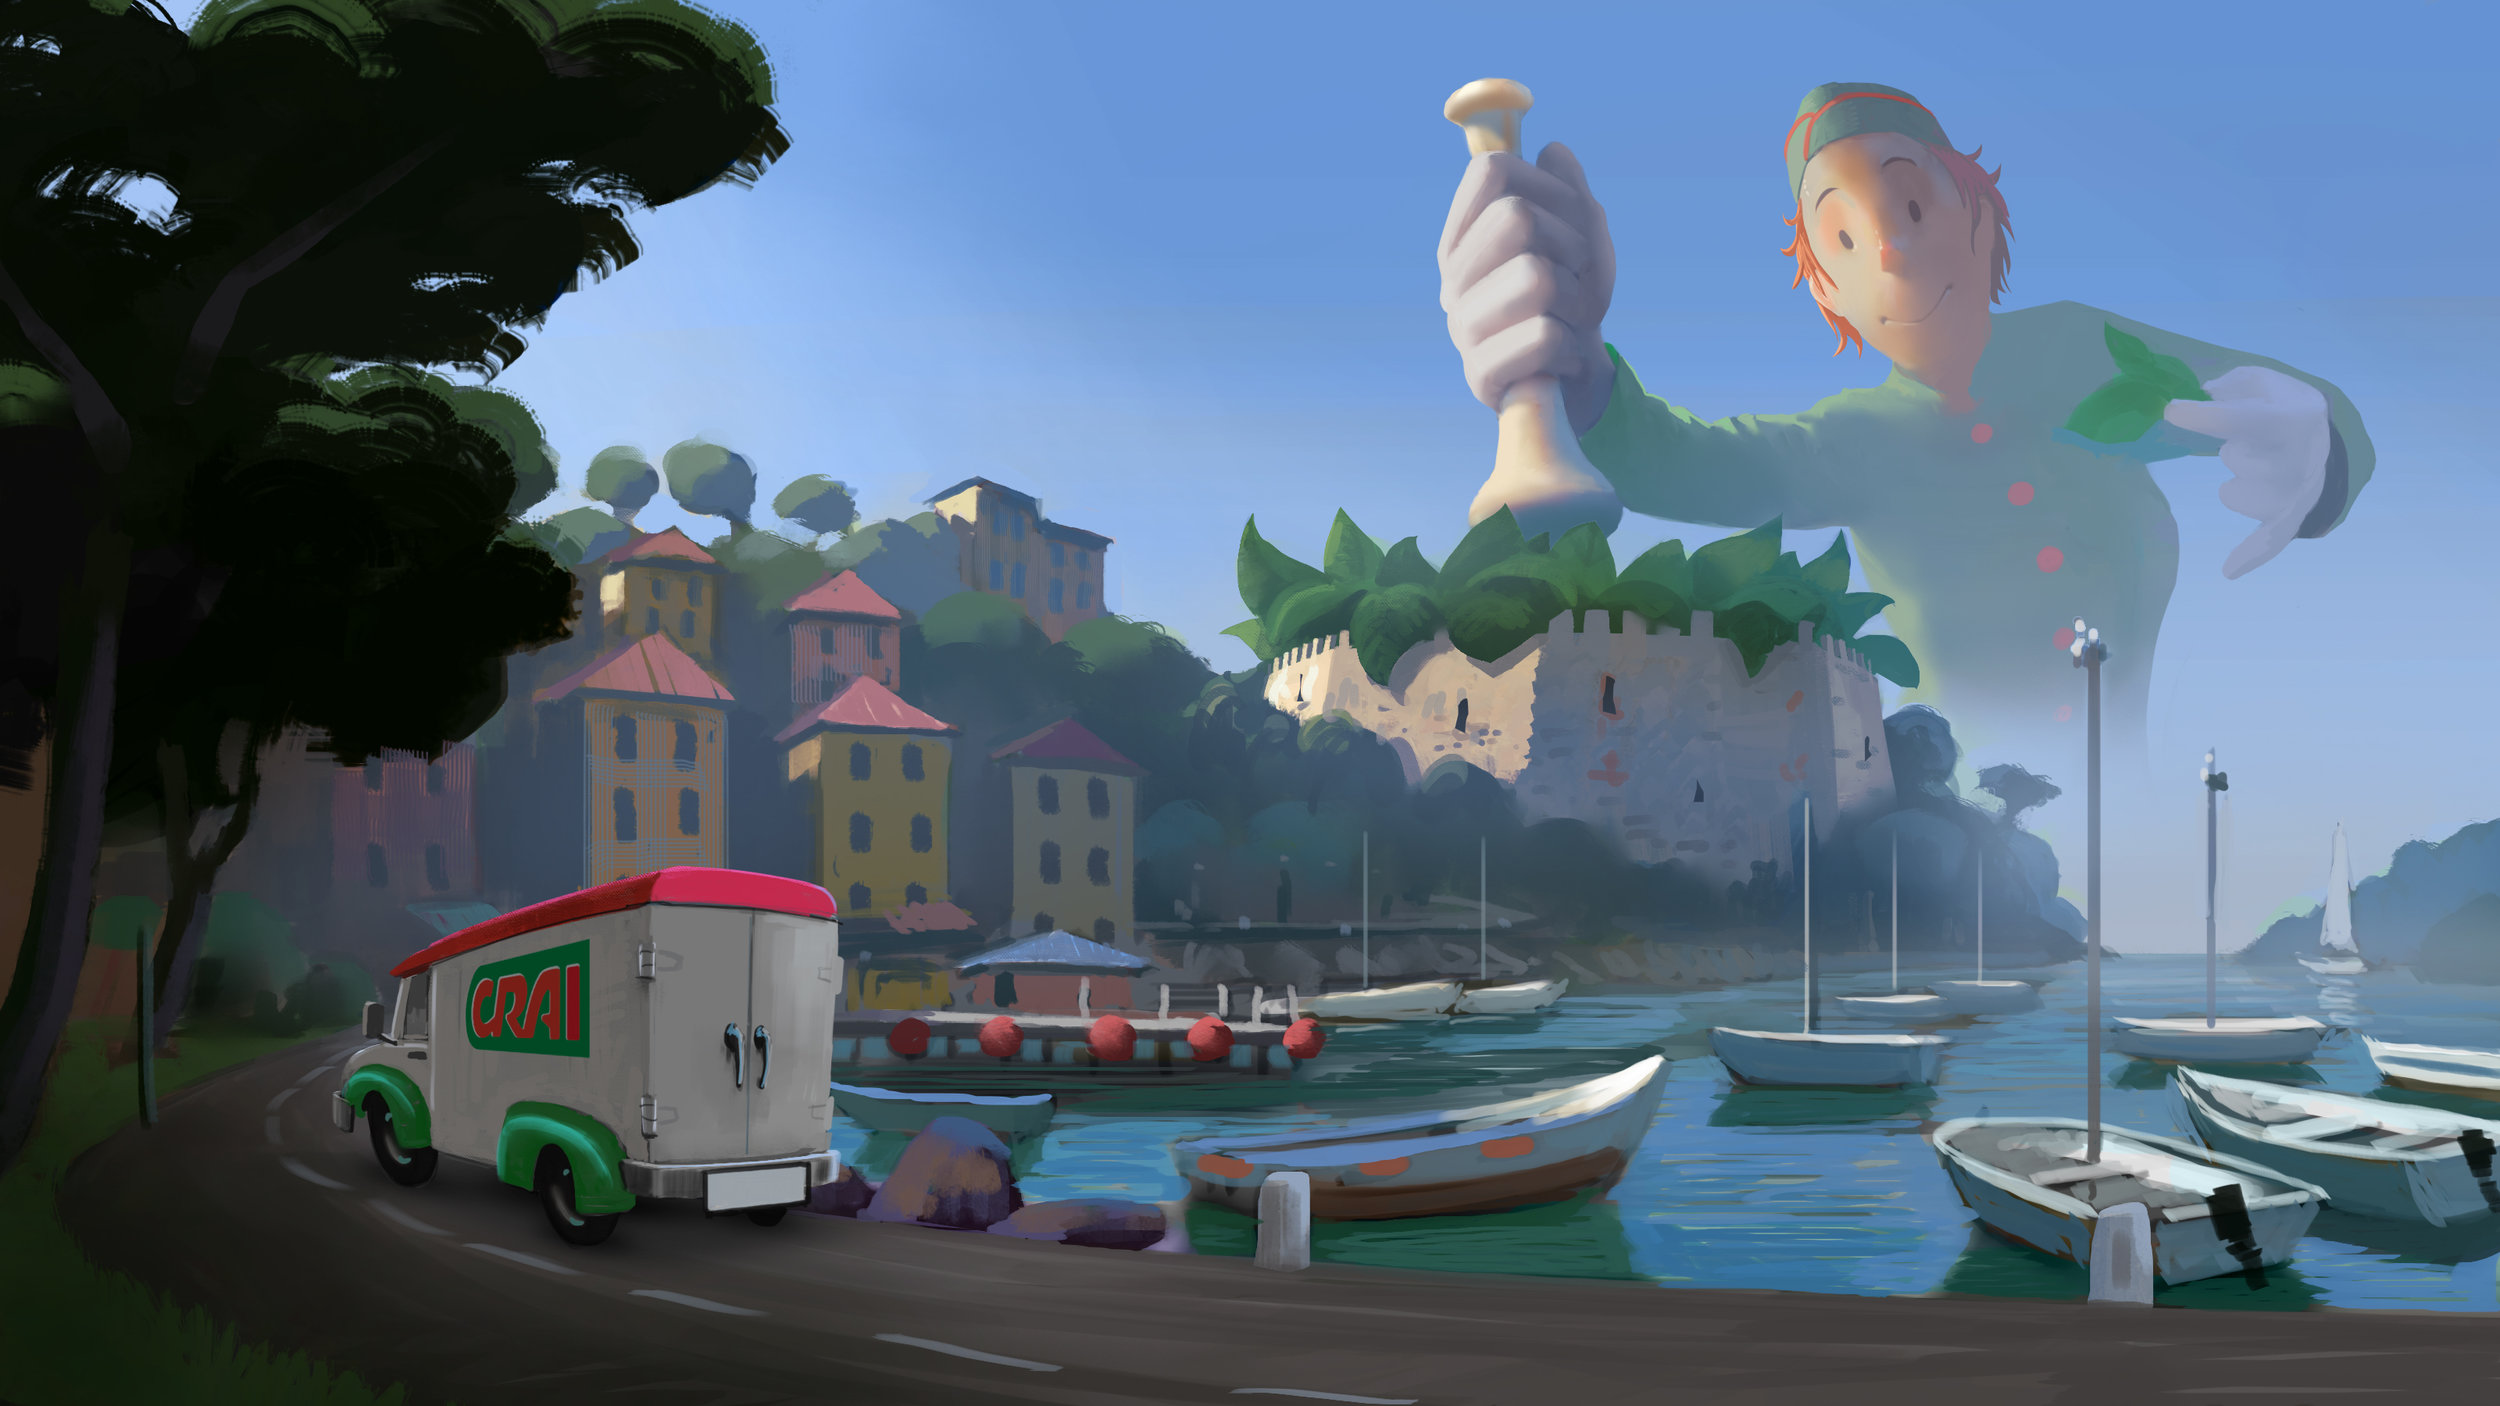 crai_in_the_heart_of_italy_taxfreefilm_concept_051.jpg